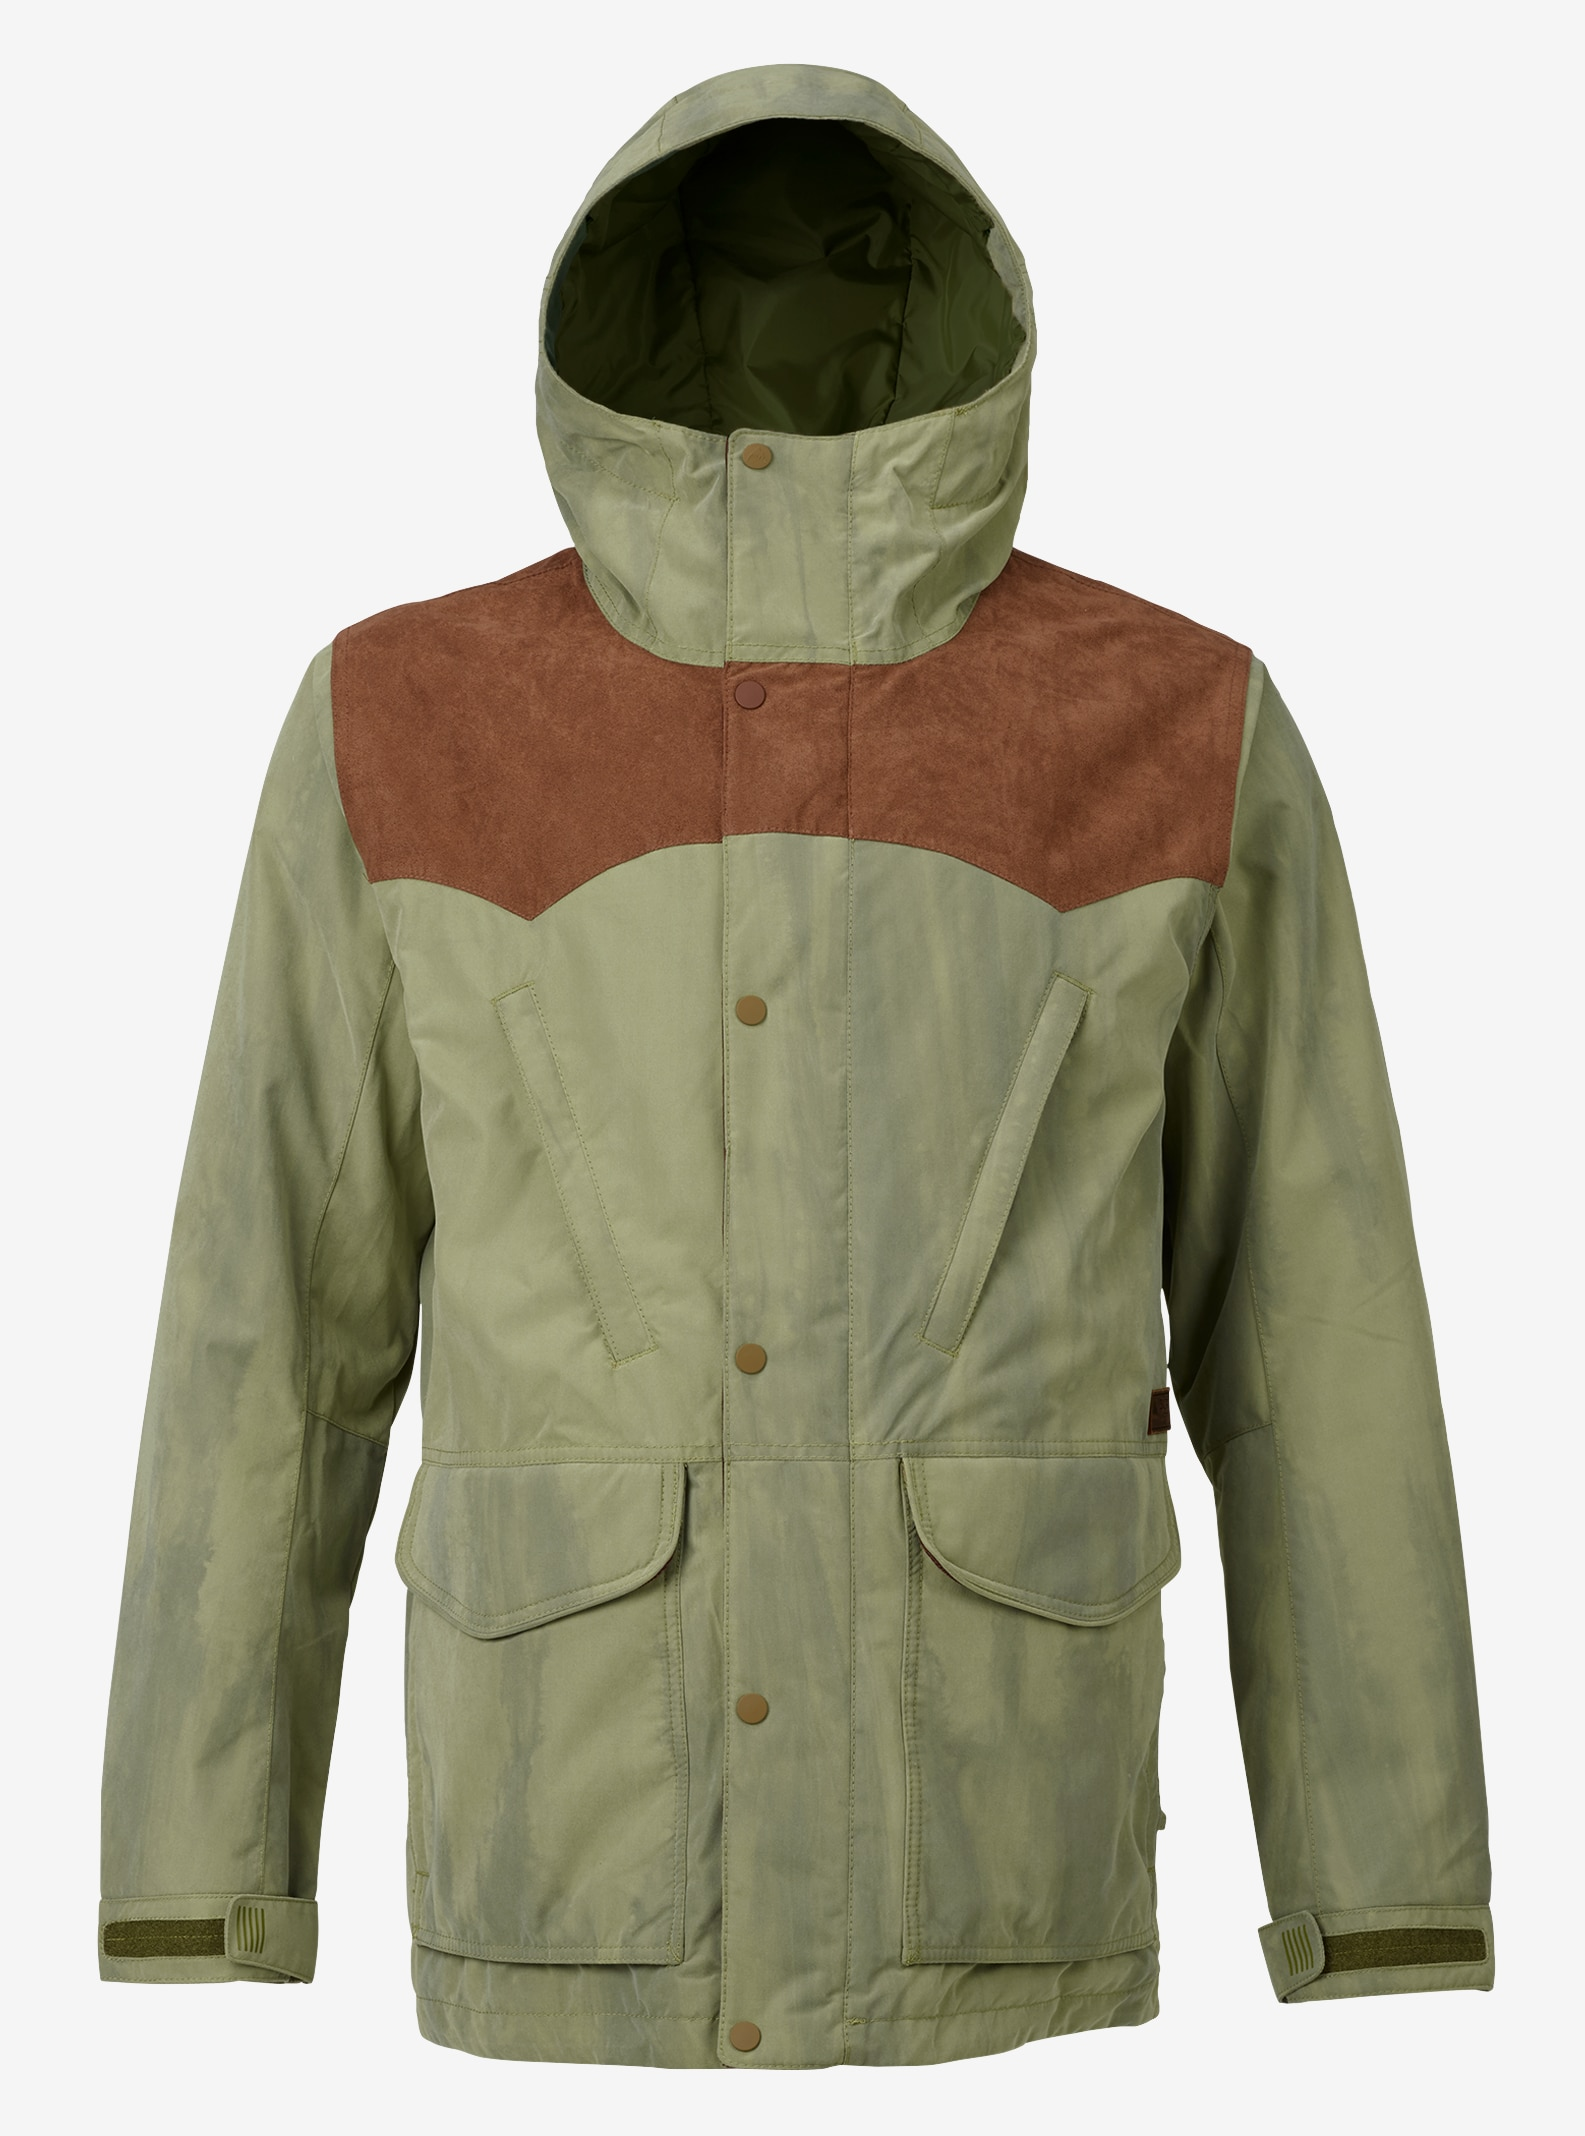 Men's Burton Folsom Jacket shown in Chestnut Suede / Olive Branch Distress